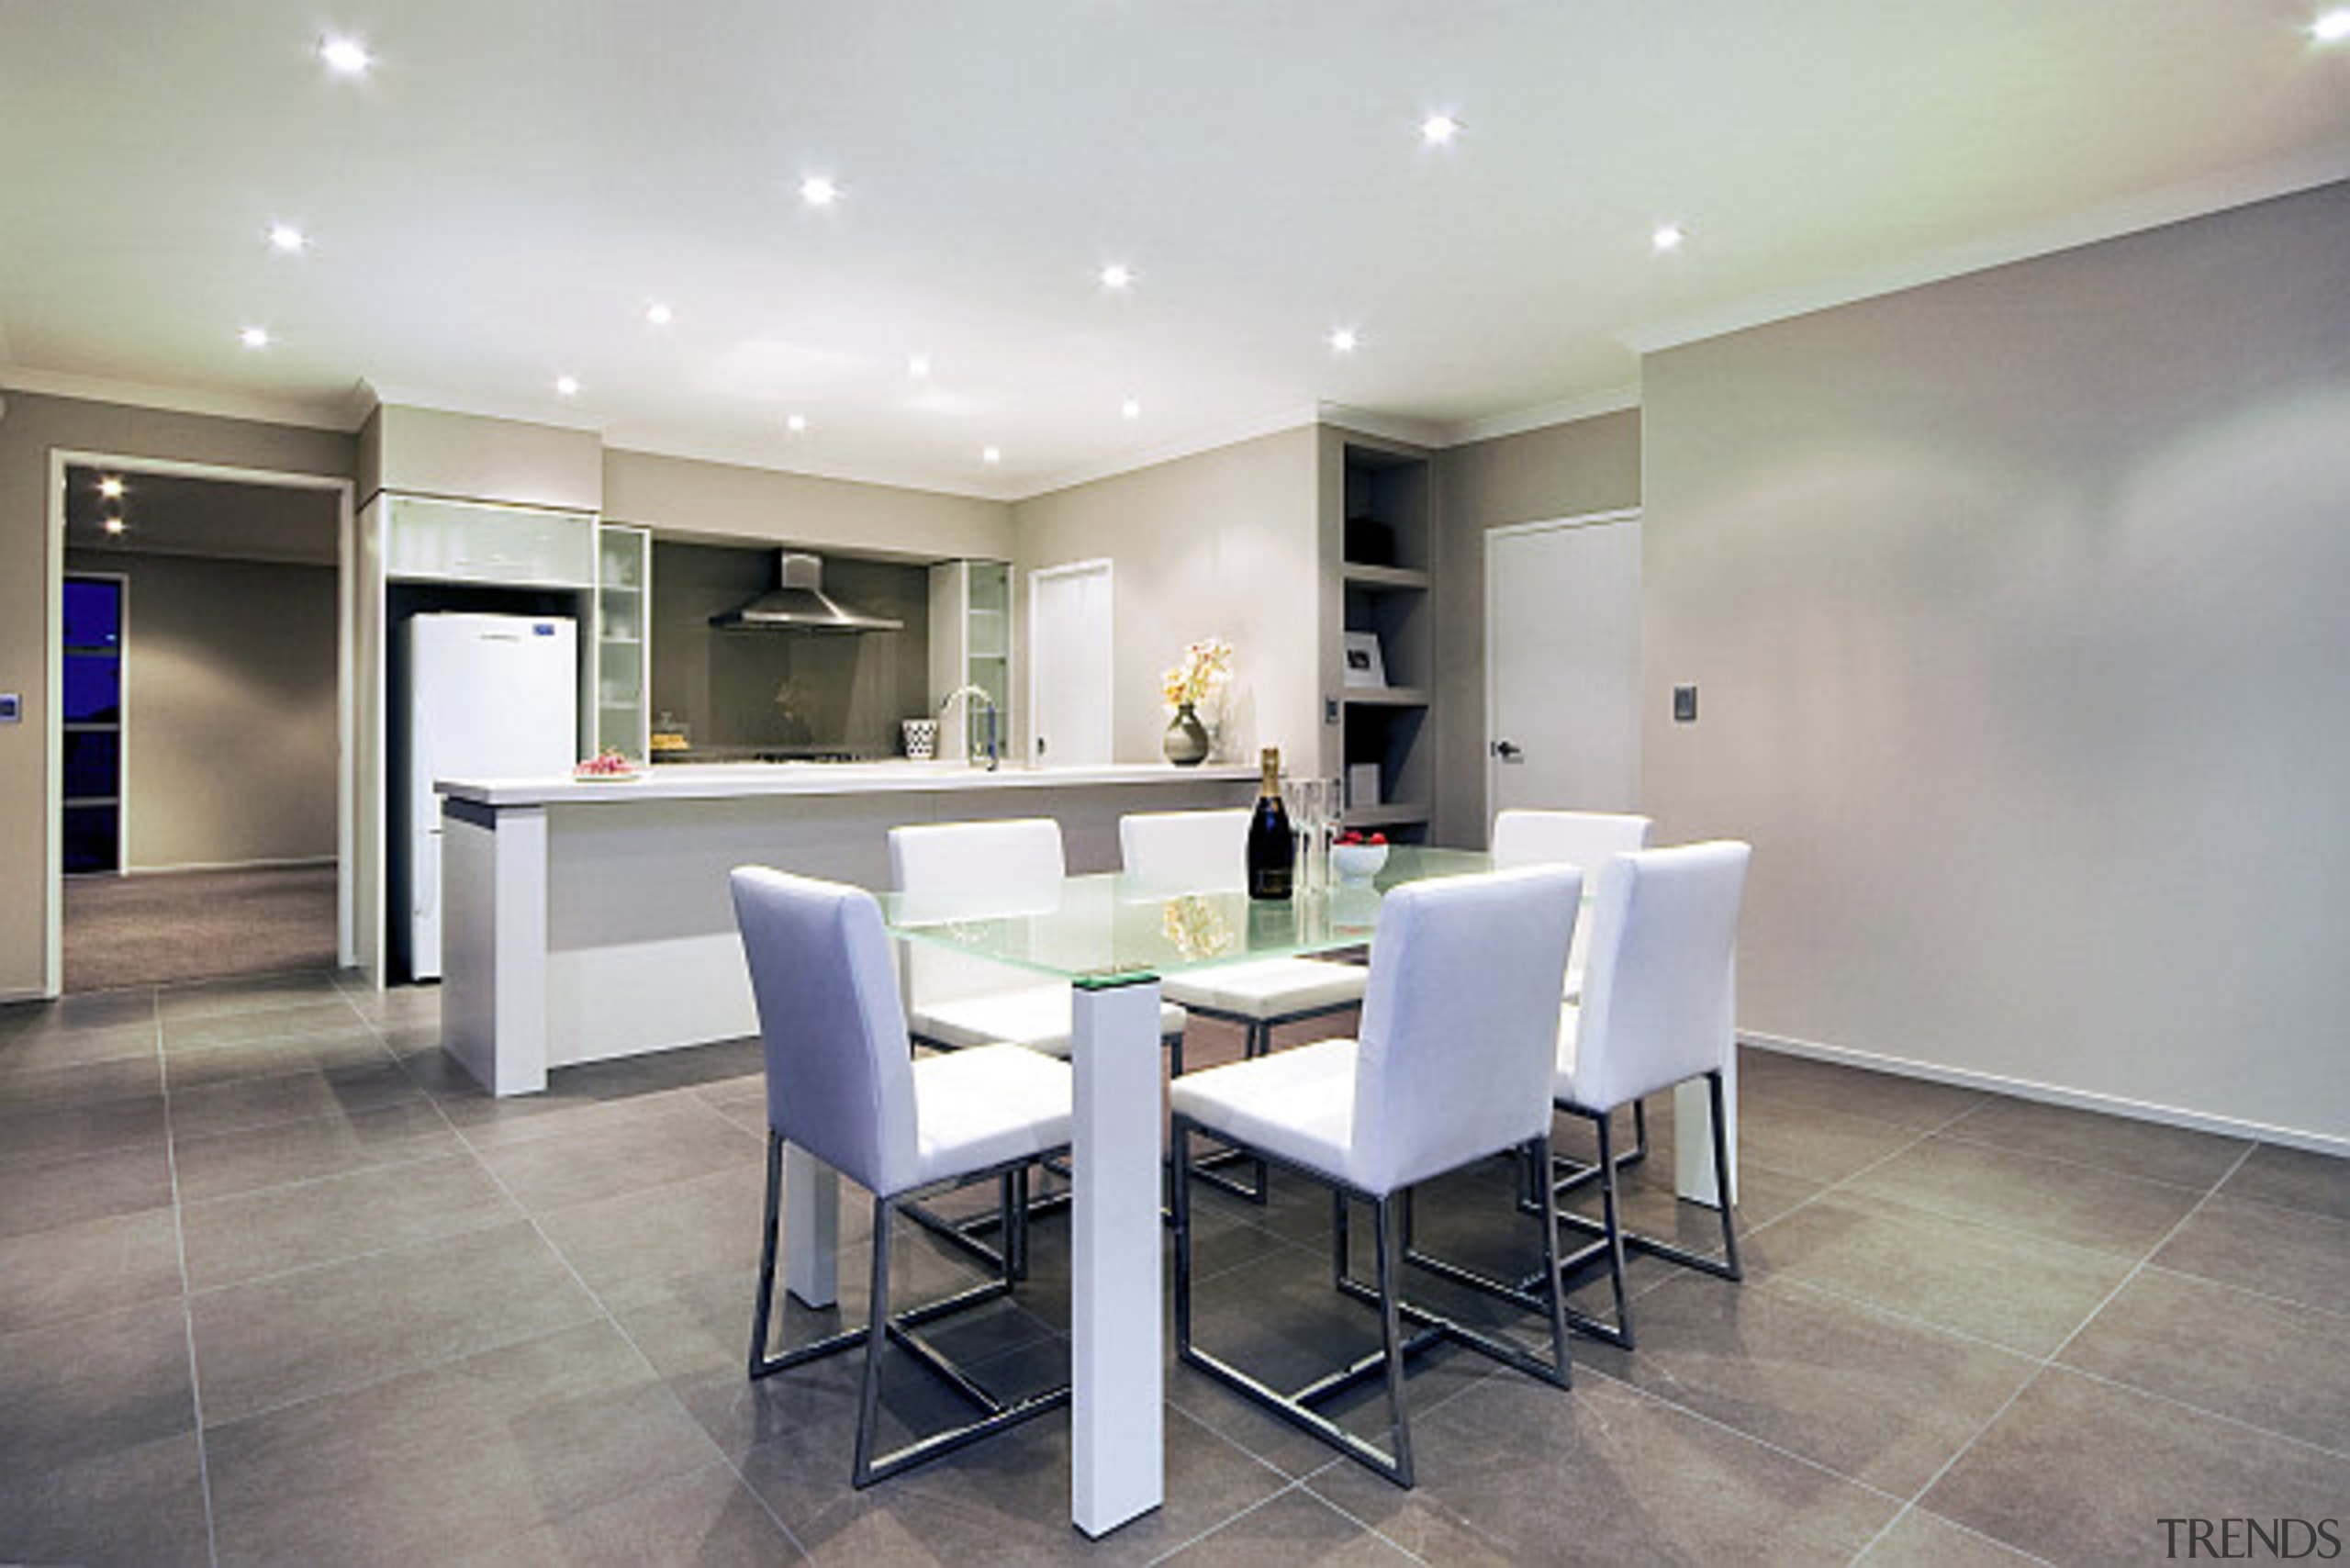 Open plan kitchen and dining area, in a ceiling, dining room, floor, flooring, interior design, property, real estate, room, table, gray